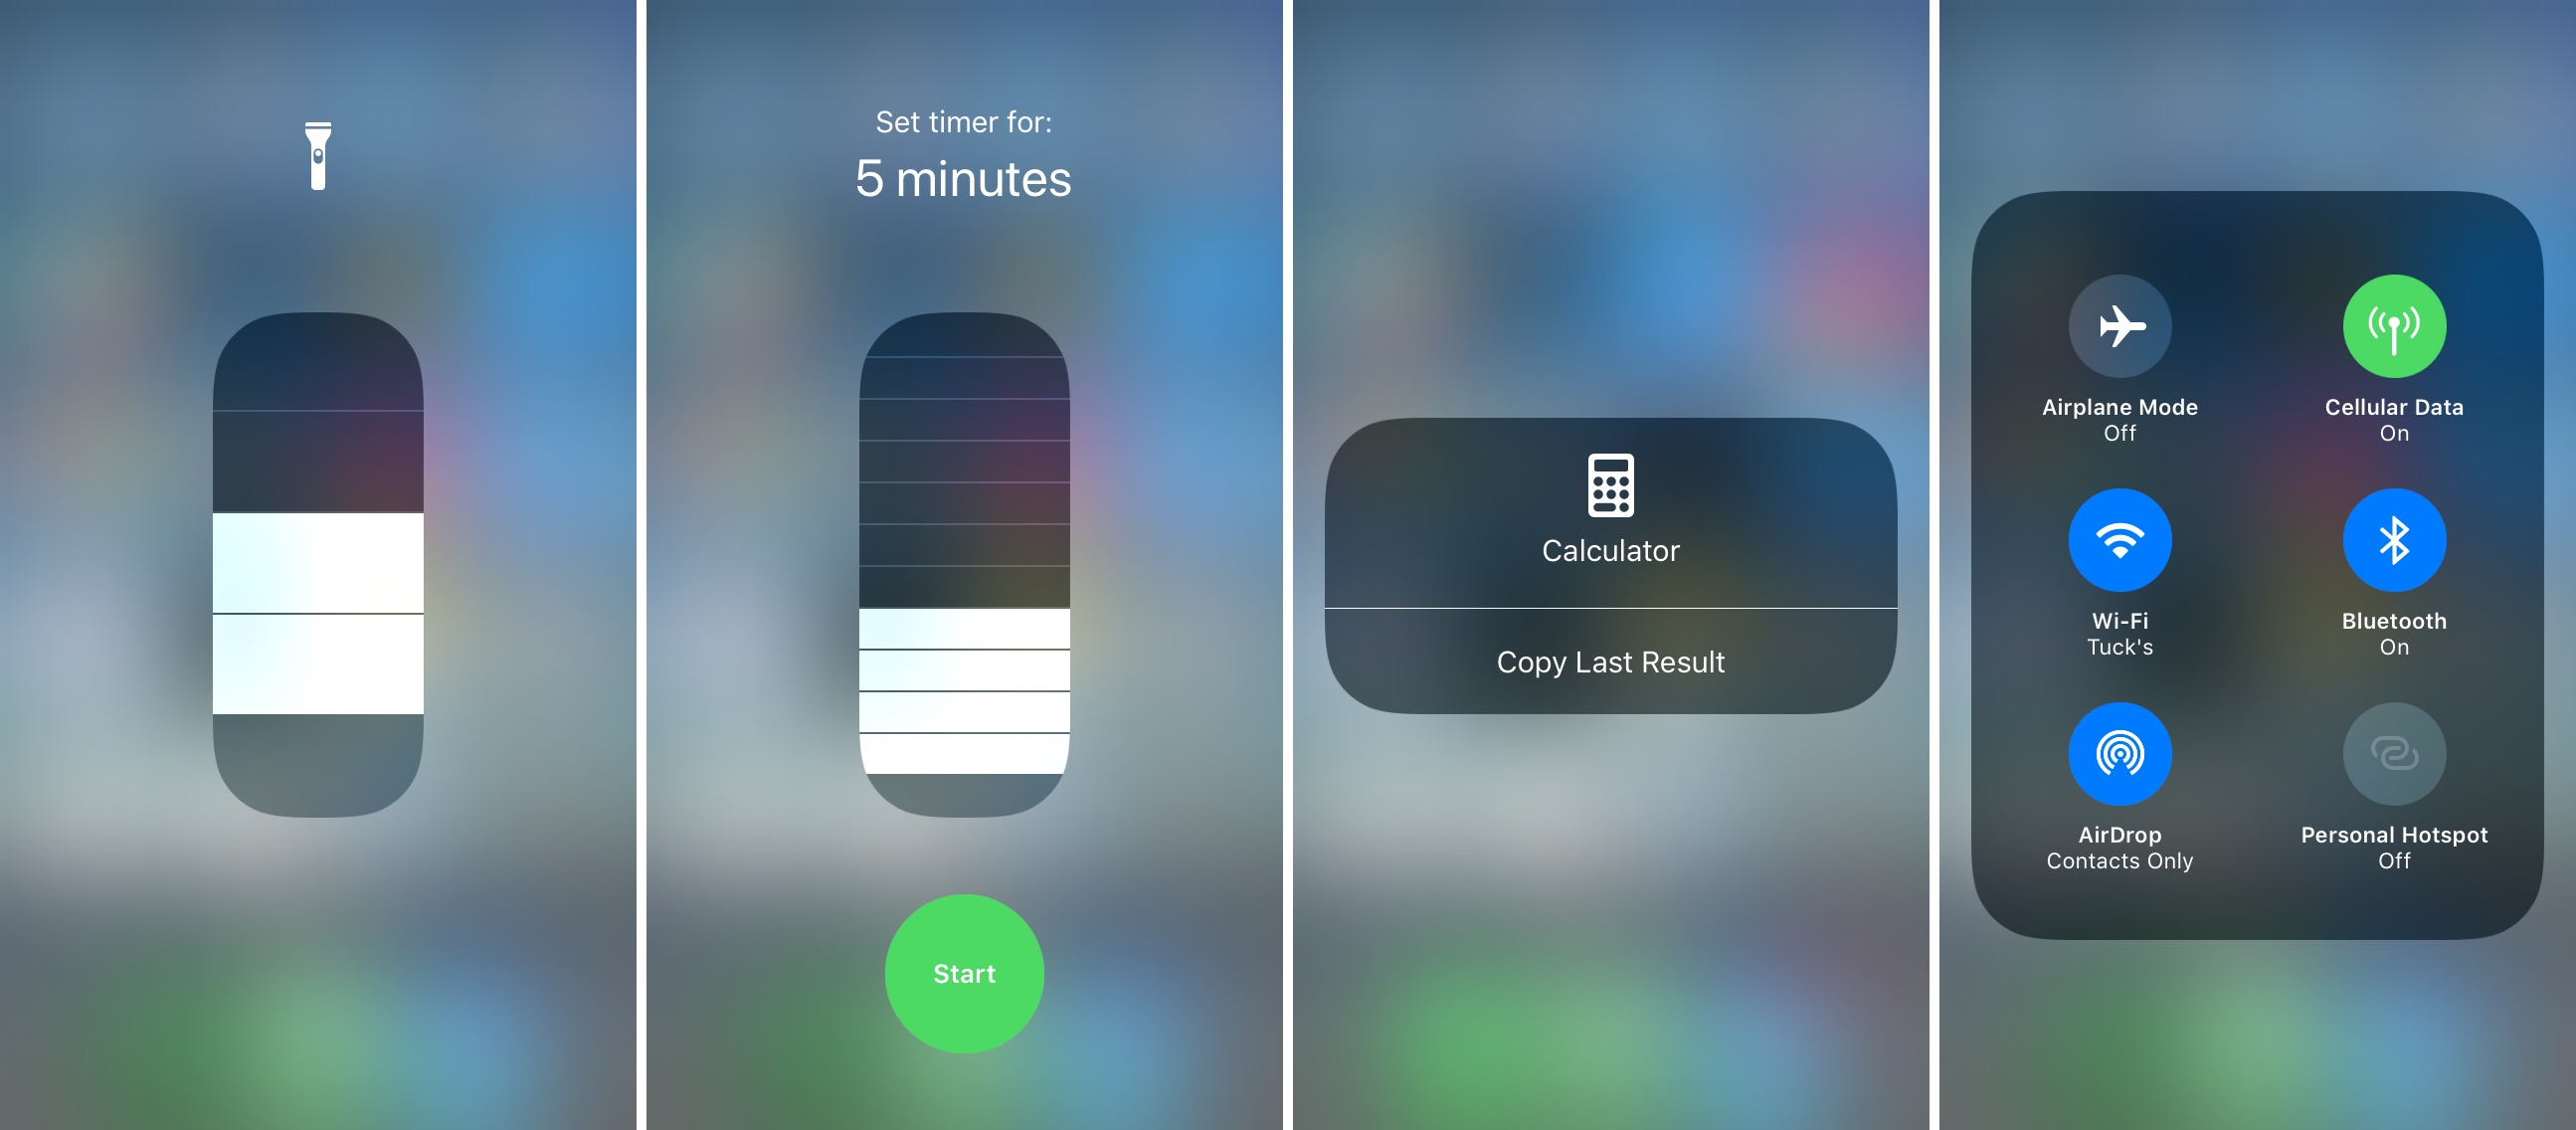 Ios 11 How To Customize Control Center 9to5mac